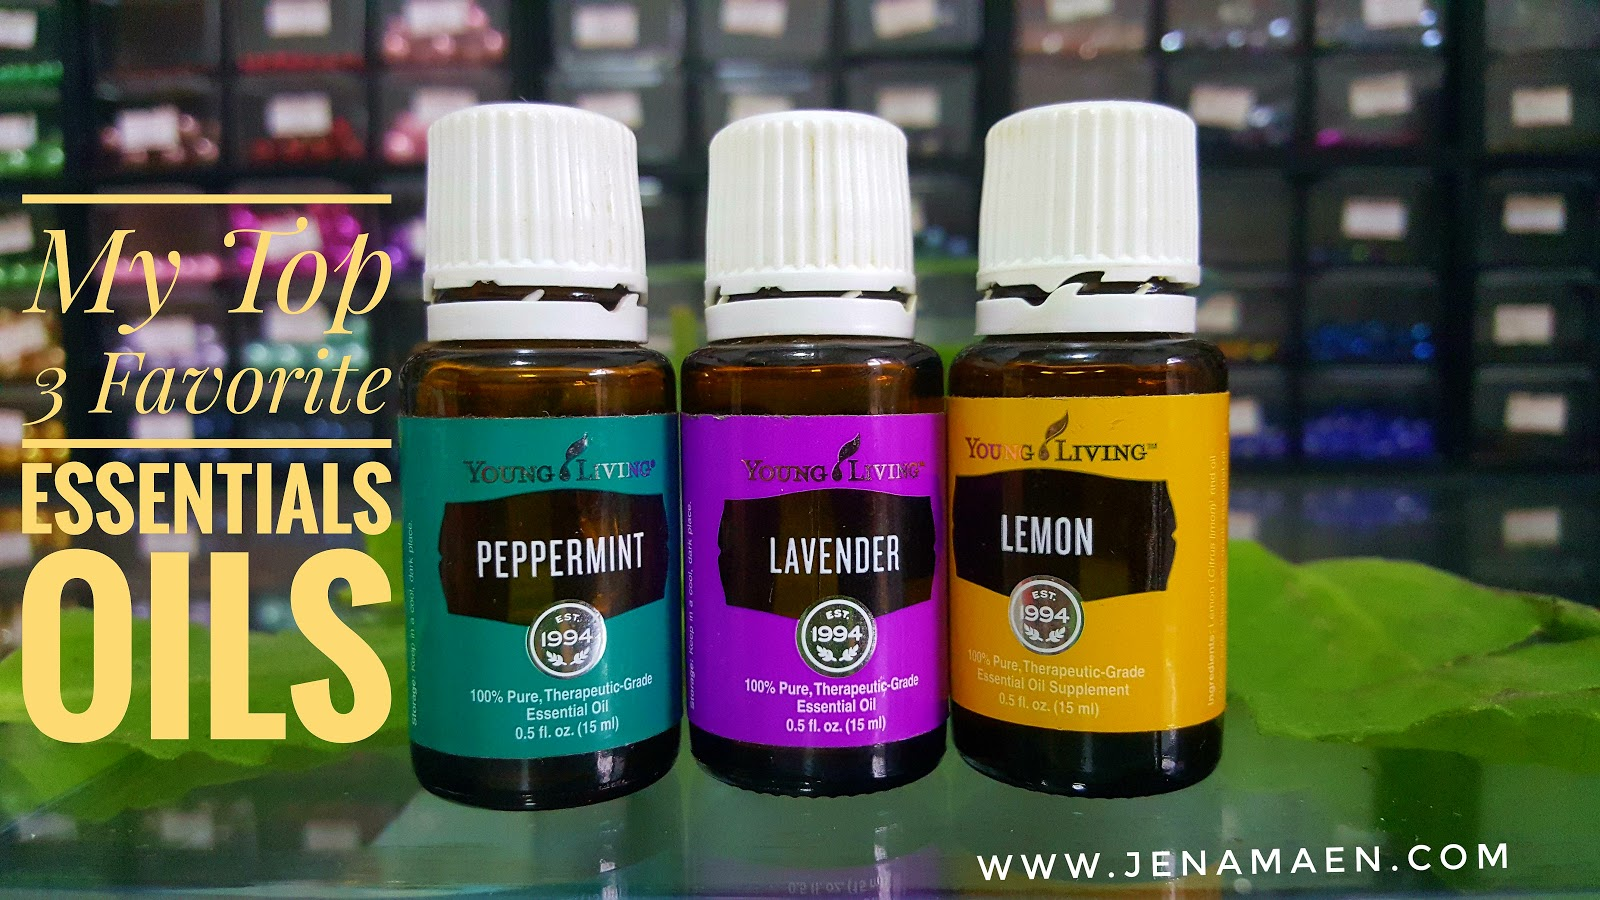 My Top 3 Favorite Essential Oils